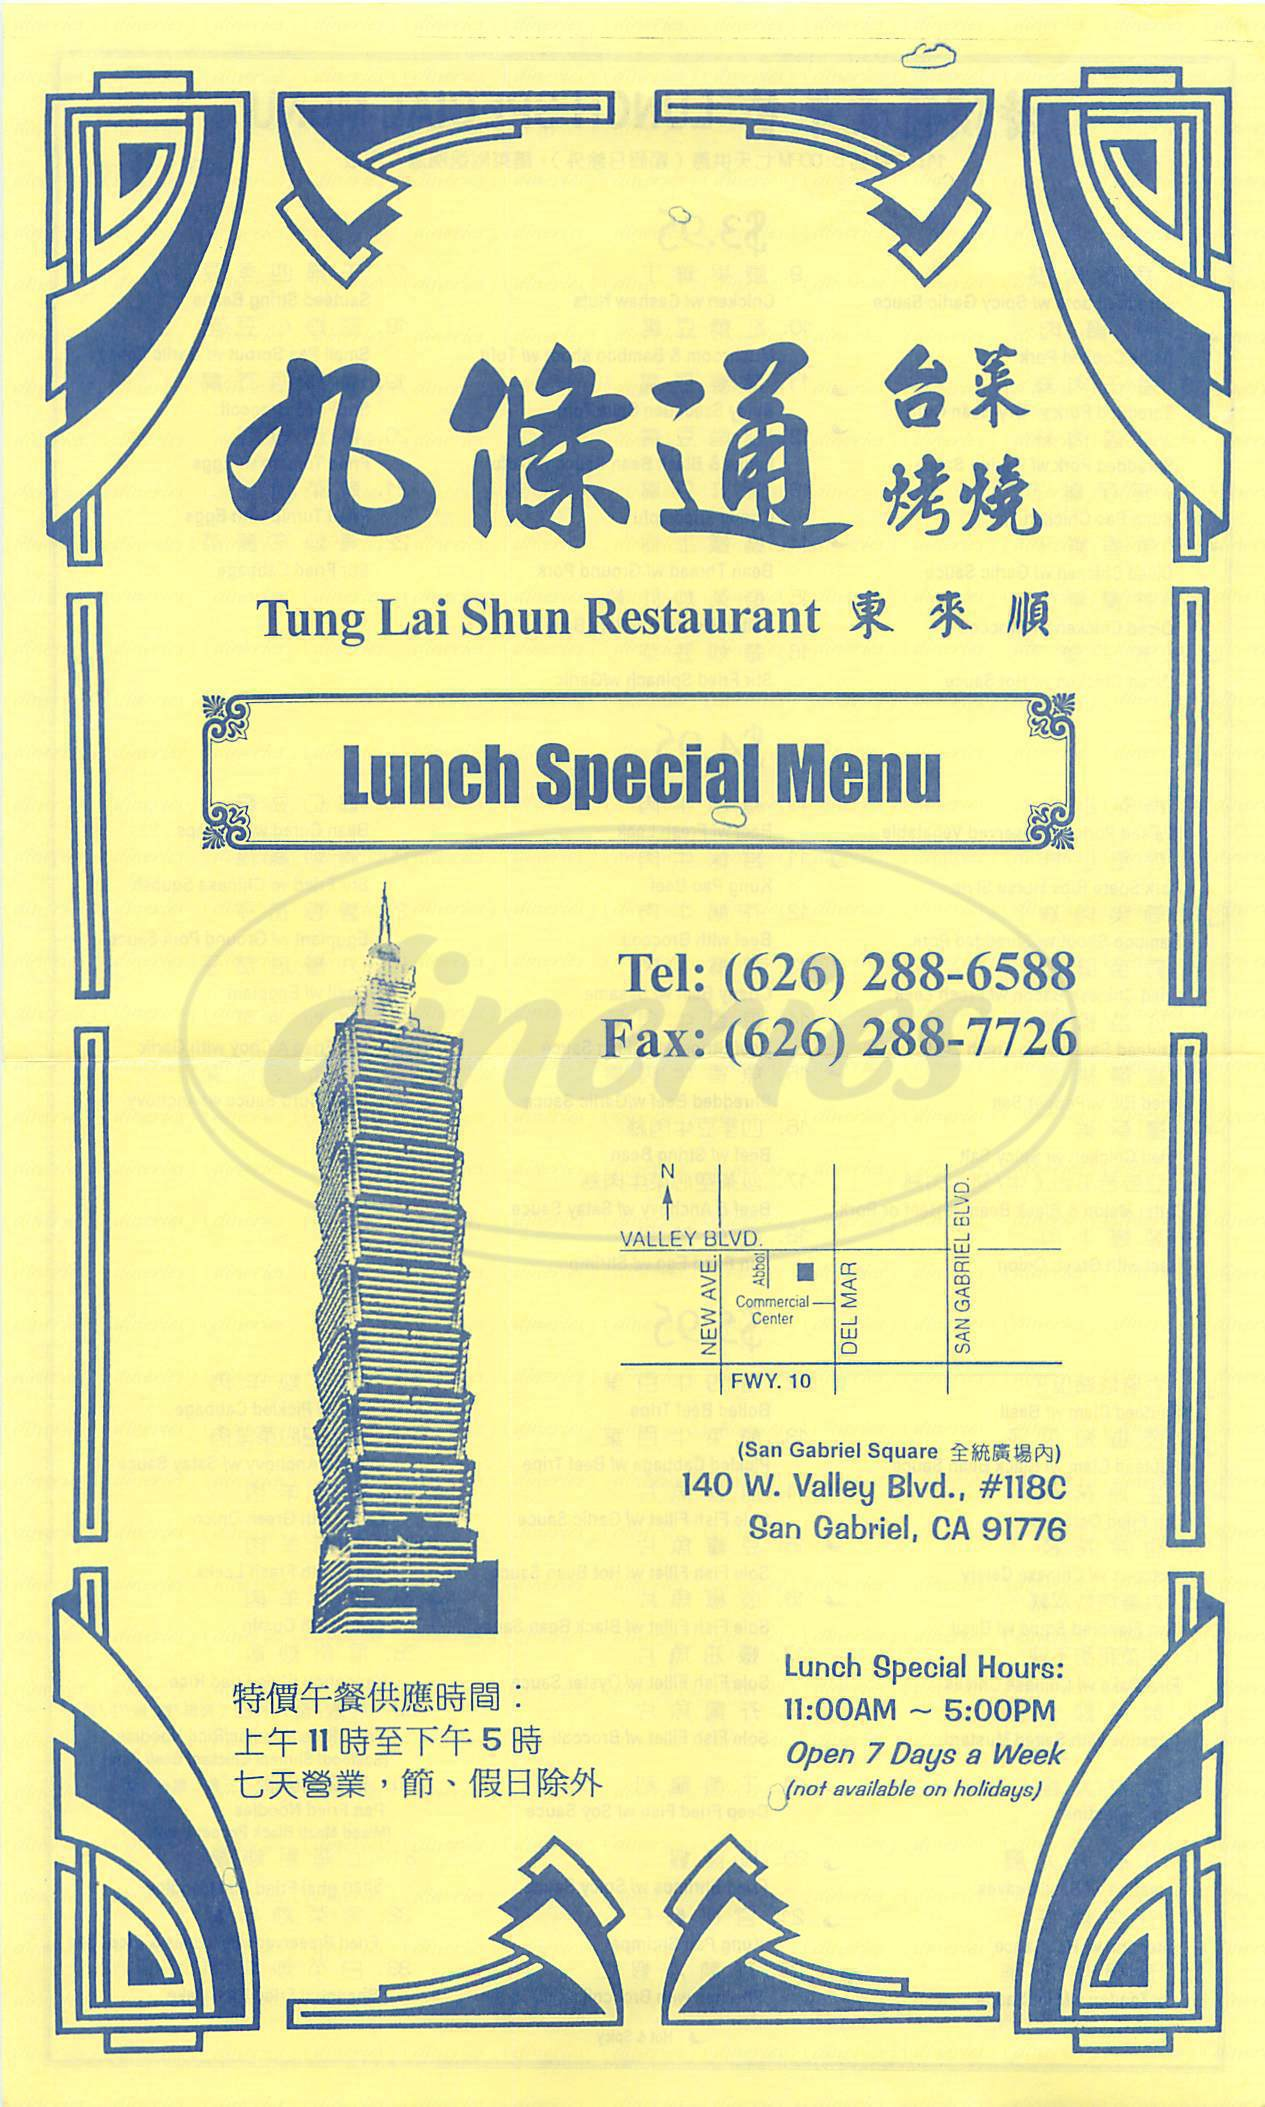 menu for Tung Lai Shun Restaurant